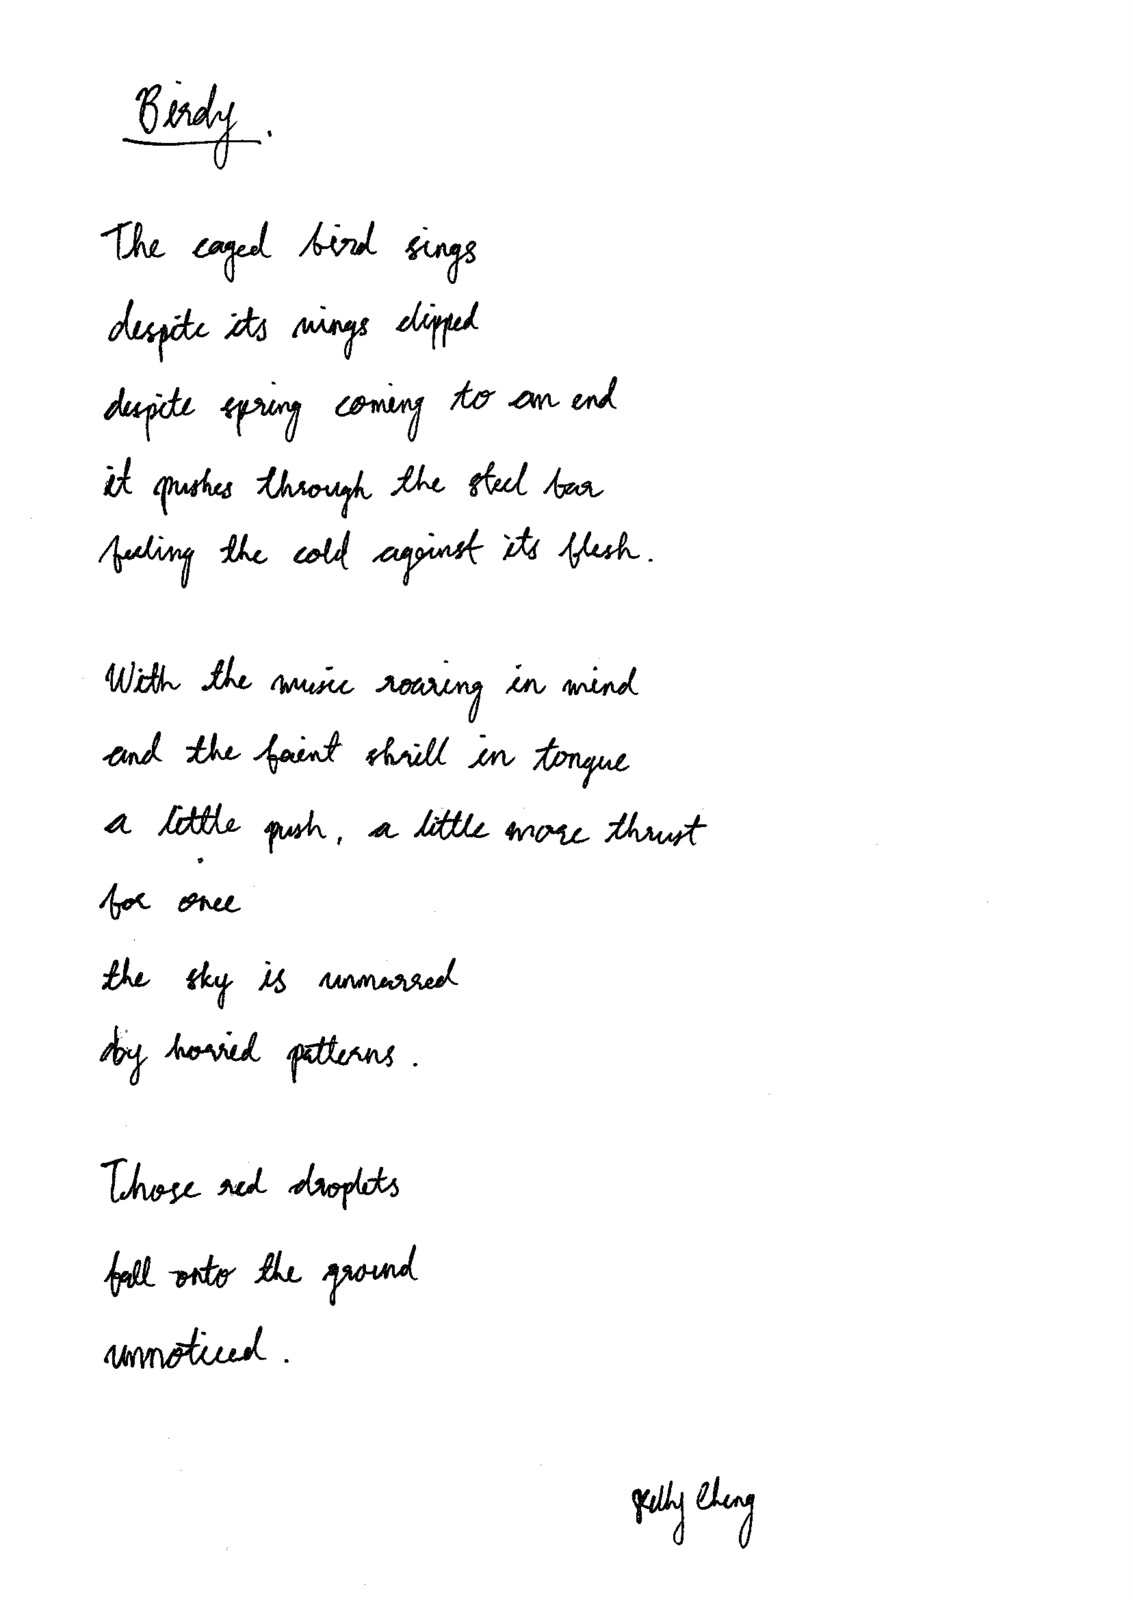 This is A Blog: Birdy - An Original Poem